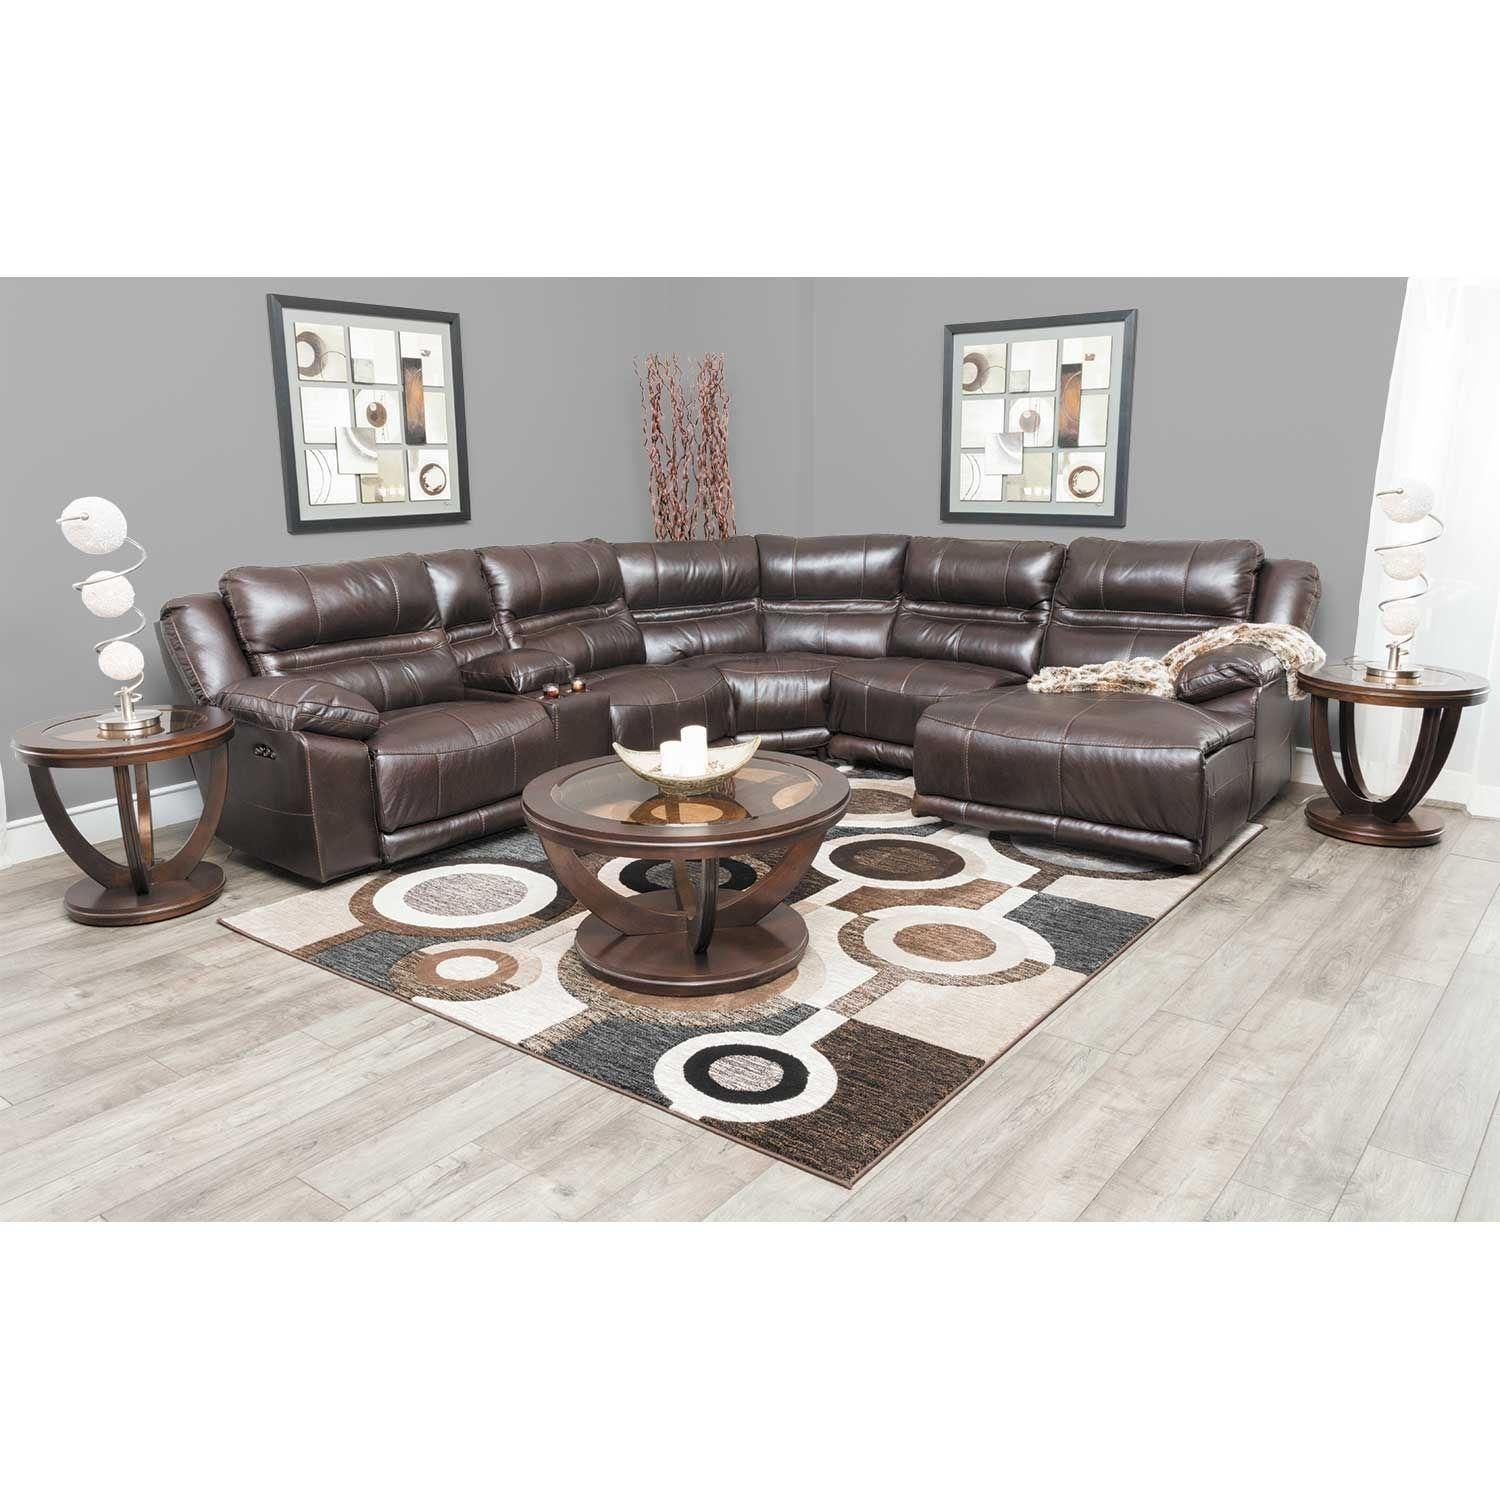 Bergamo 6 Piece Power Reclining Sectional With Adjustable Headrest with Jackson 6 Piece Power Reclining Sectionals With  Sleeper (Image 3 of 30)